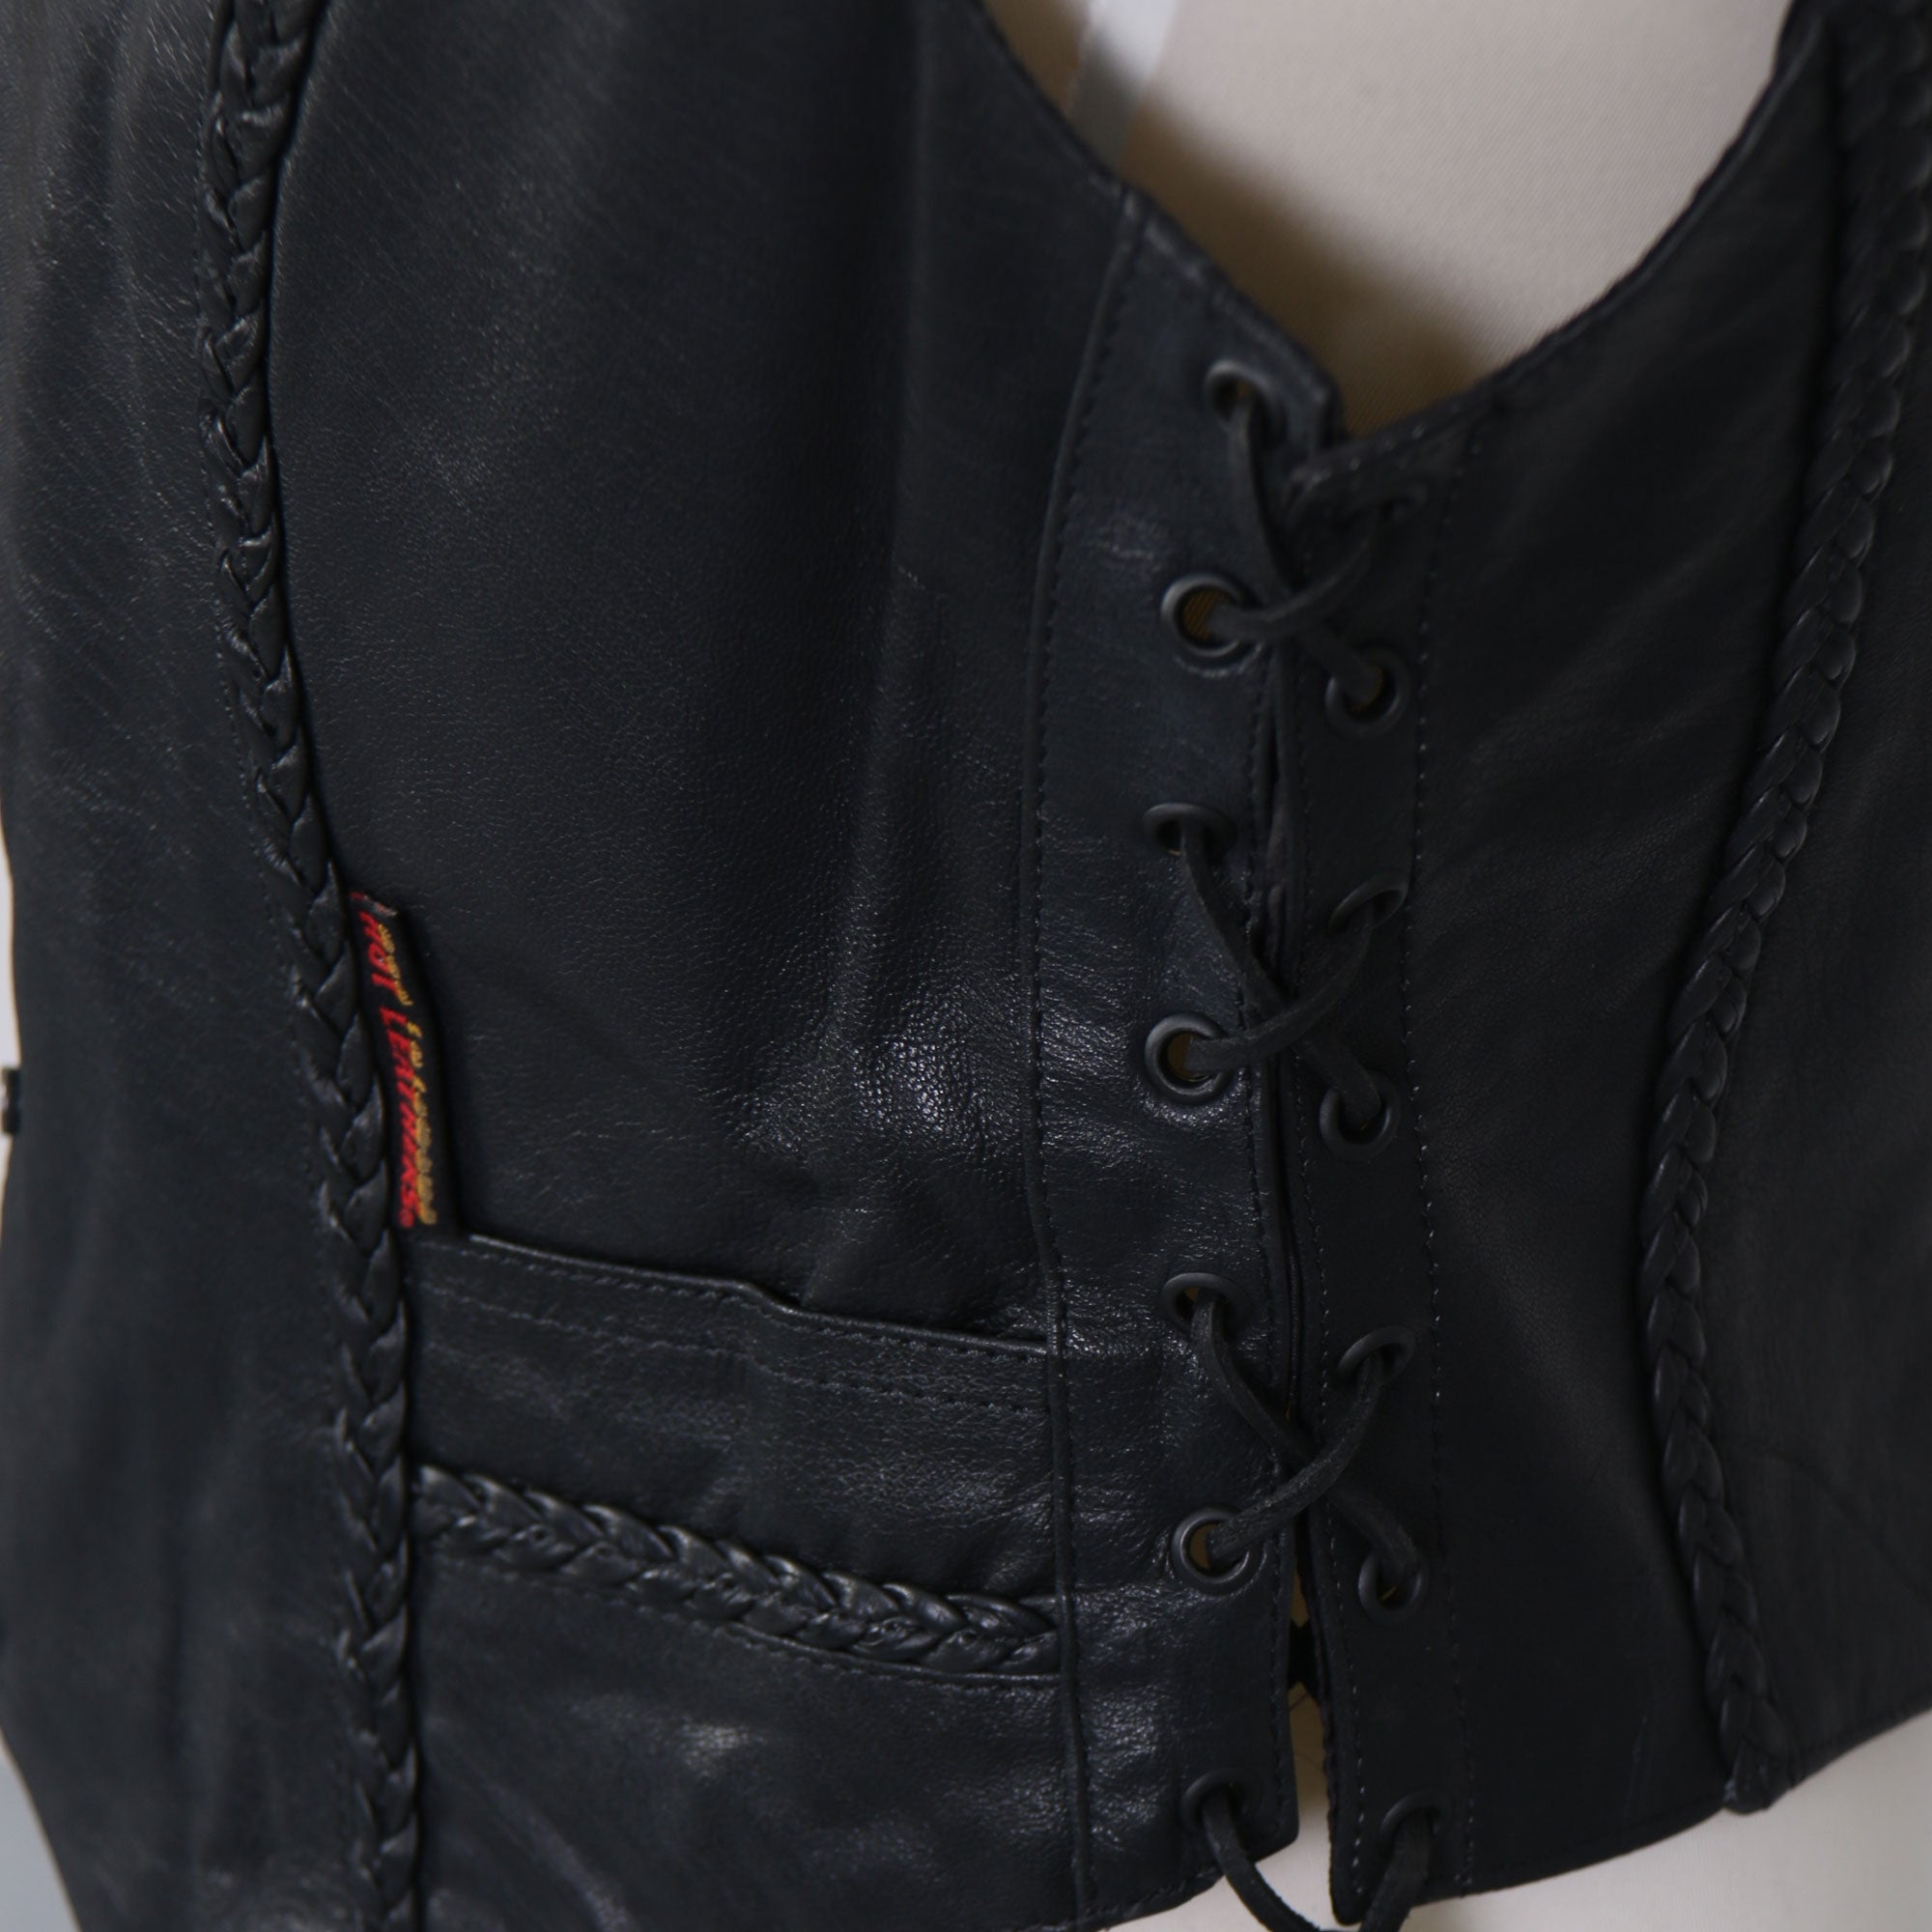 Hot Leathers Ladies Black Leather Vest